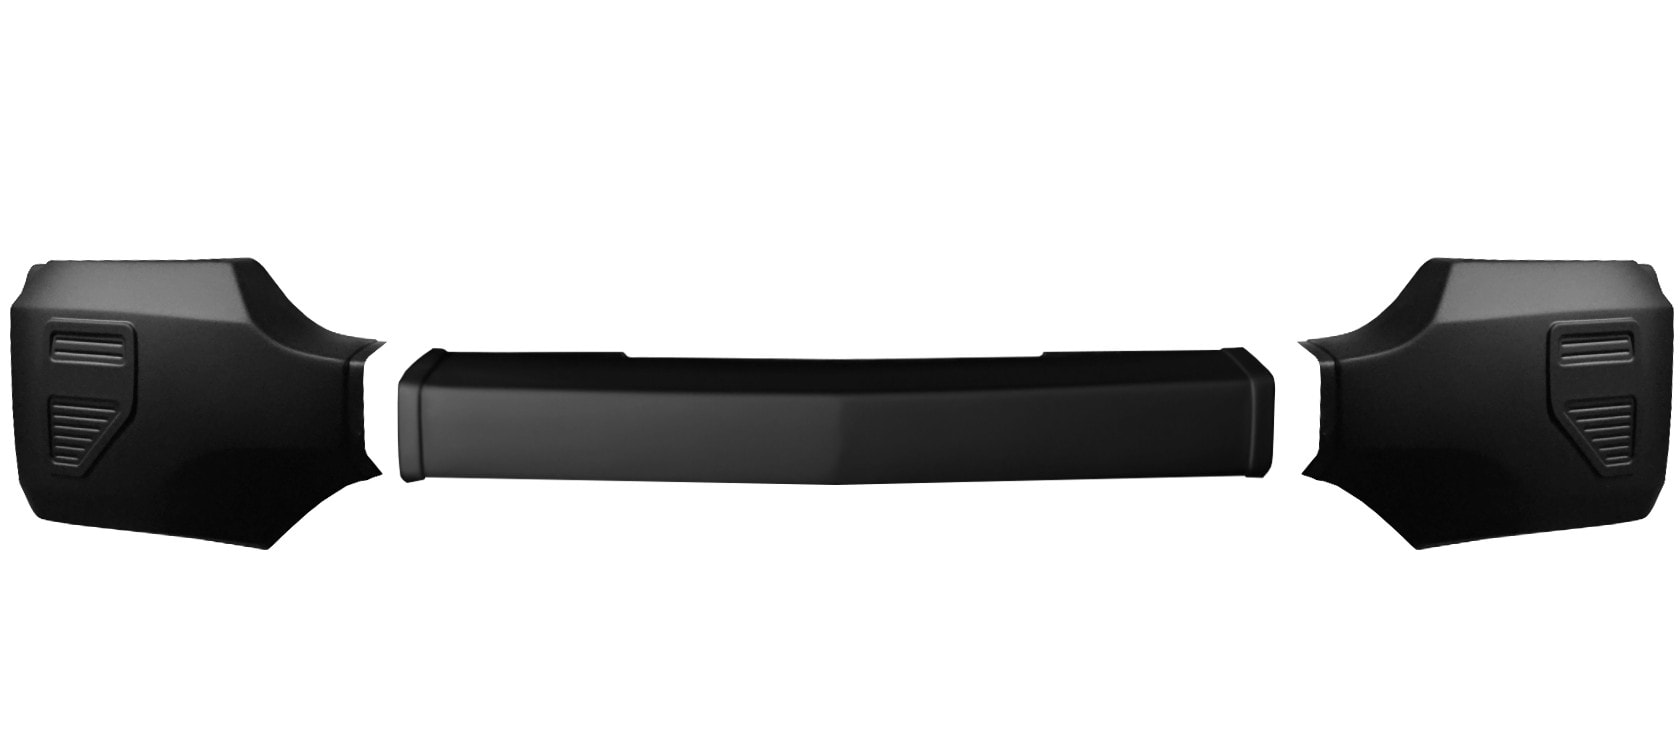 Matte Black Front BumperShellz - Truck Bumper Covers for a 2016-2017 Chevy Silverado without fog lamps and without parking sensors